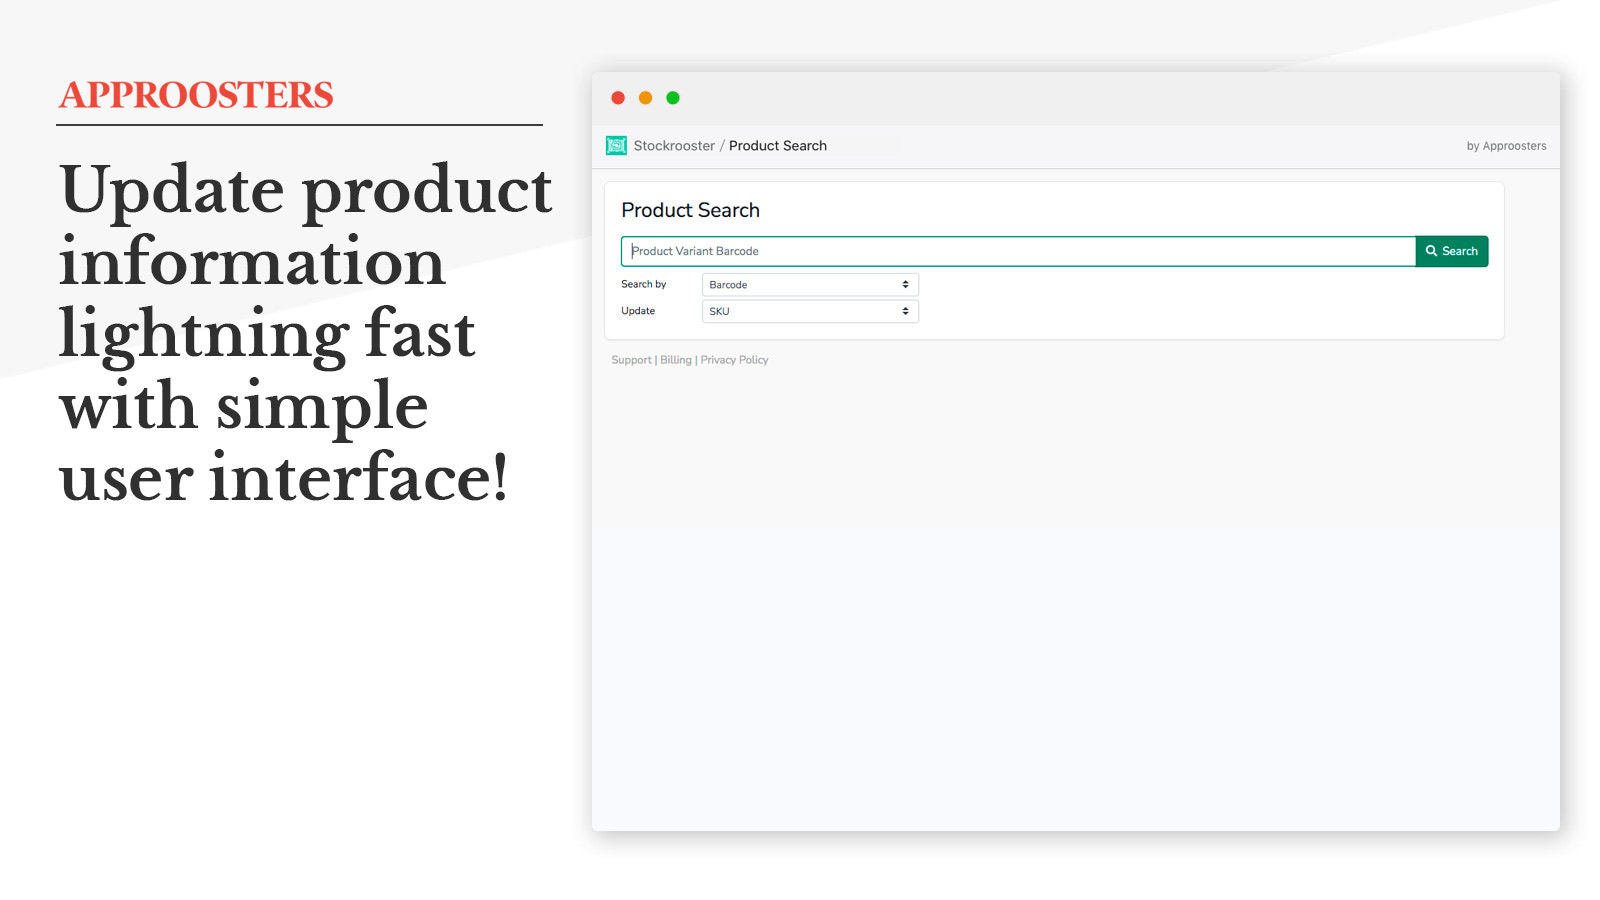 Update product information of your choice